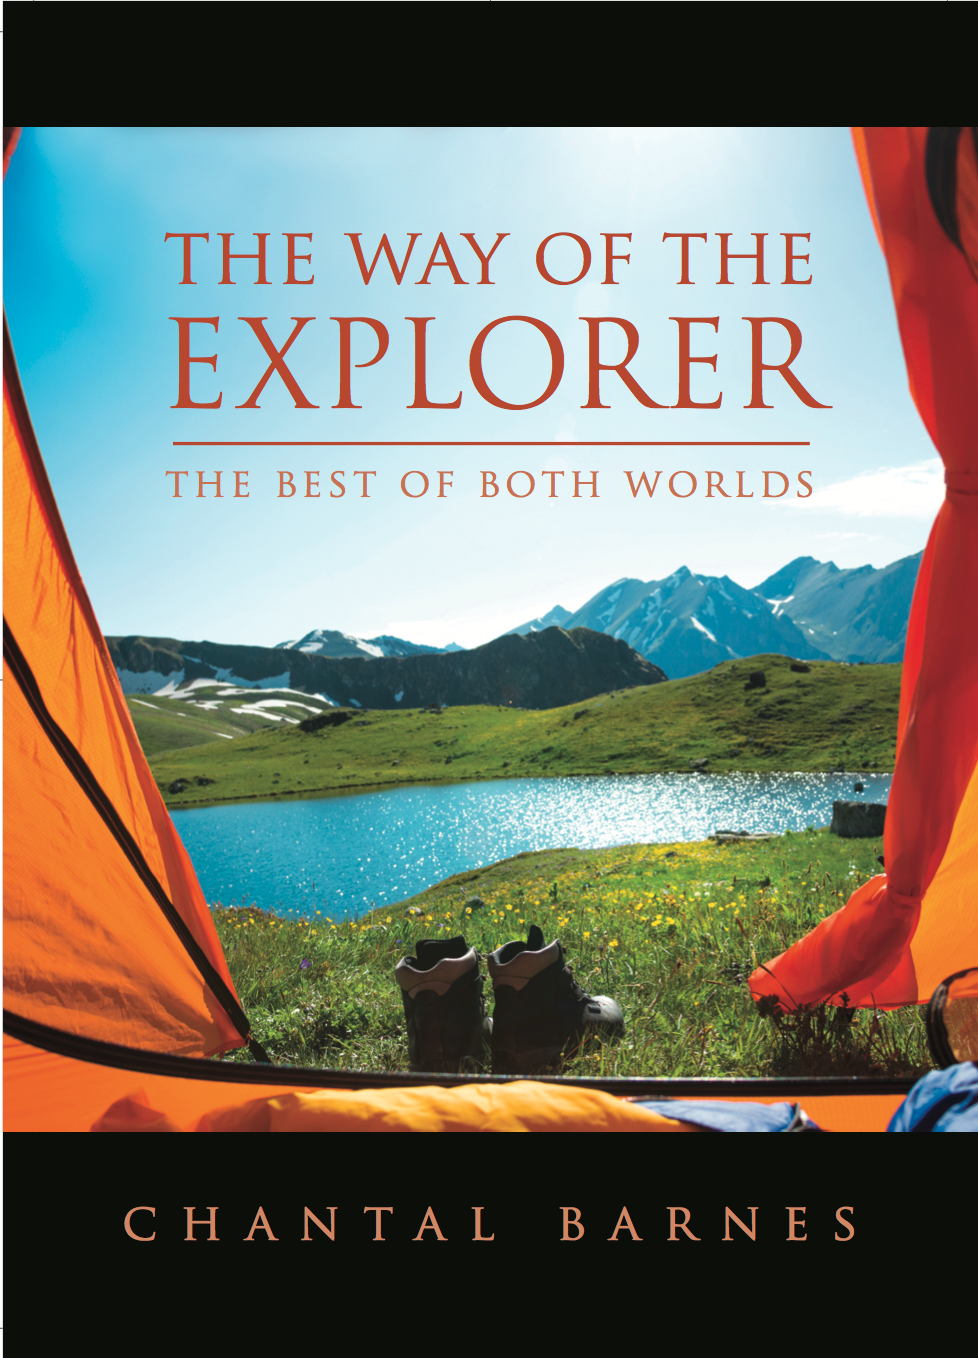 the-way-of-the-explorer-chantal-barnes.png